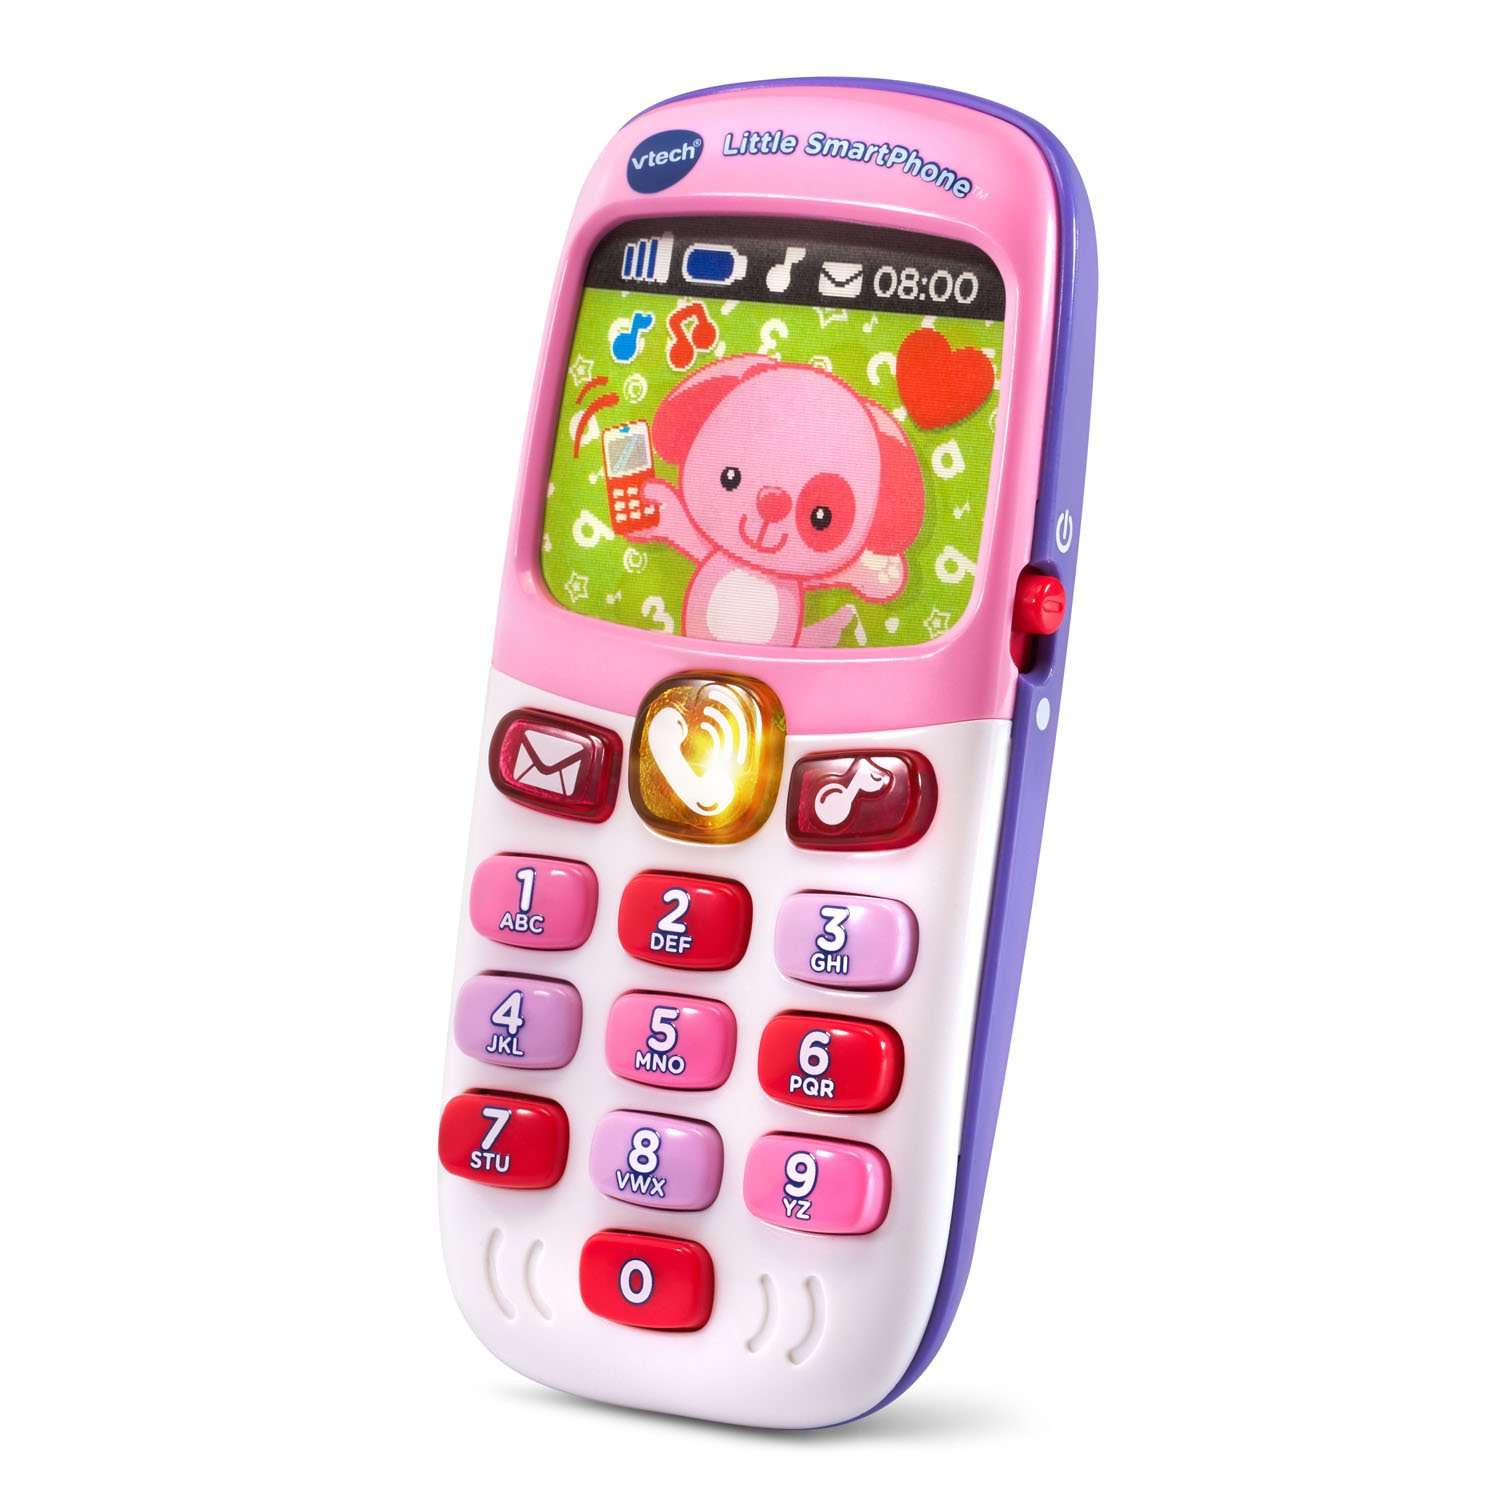 VTech Little Smartphone Amazon Exclusive, Pink 80-138150